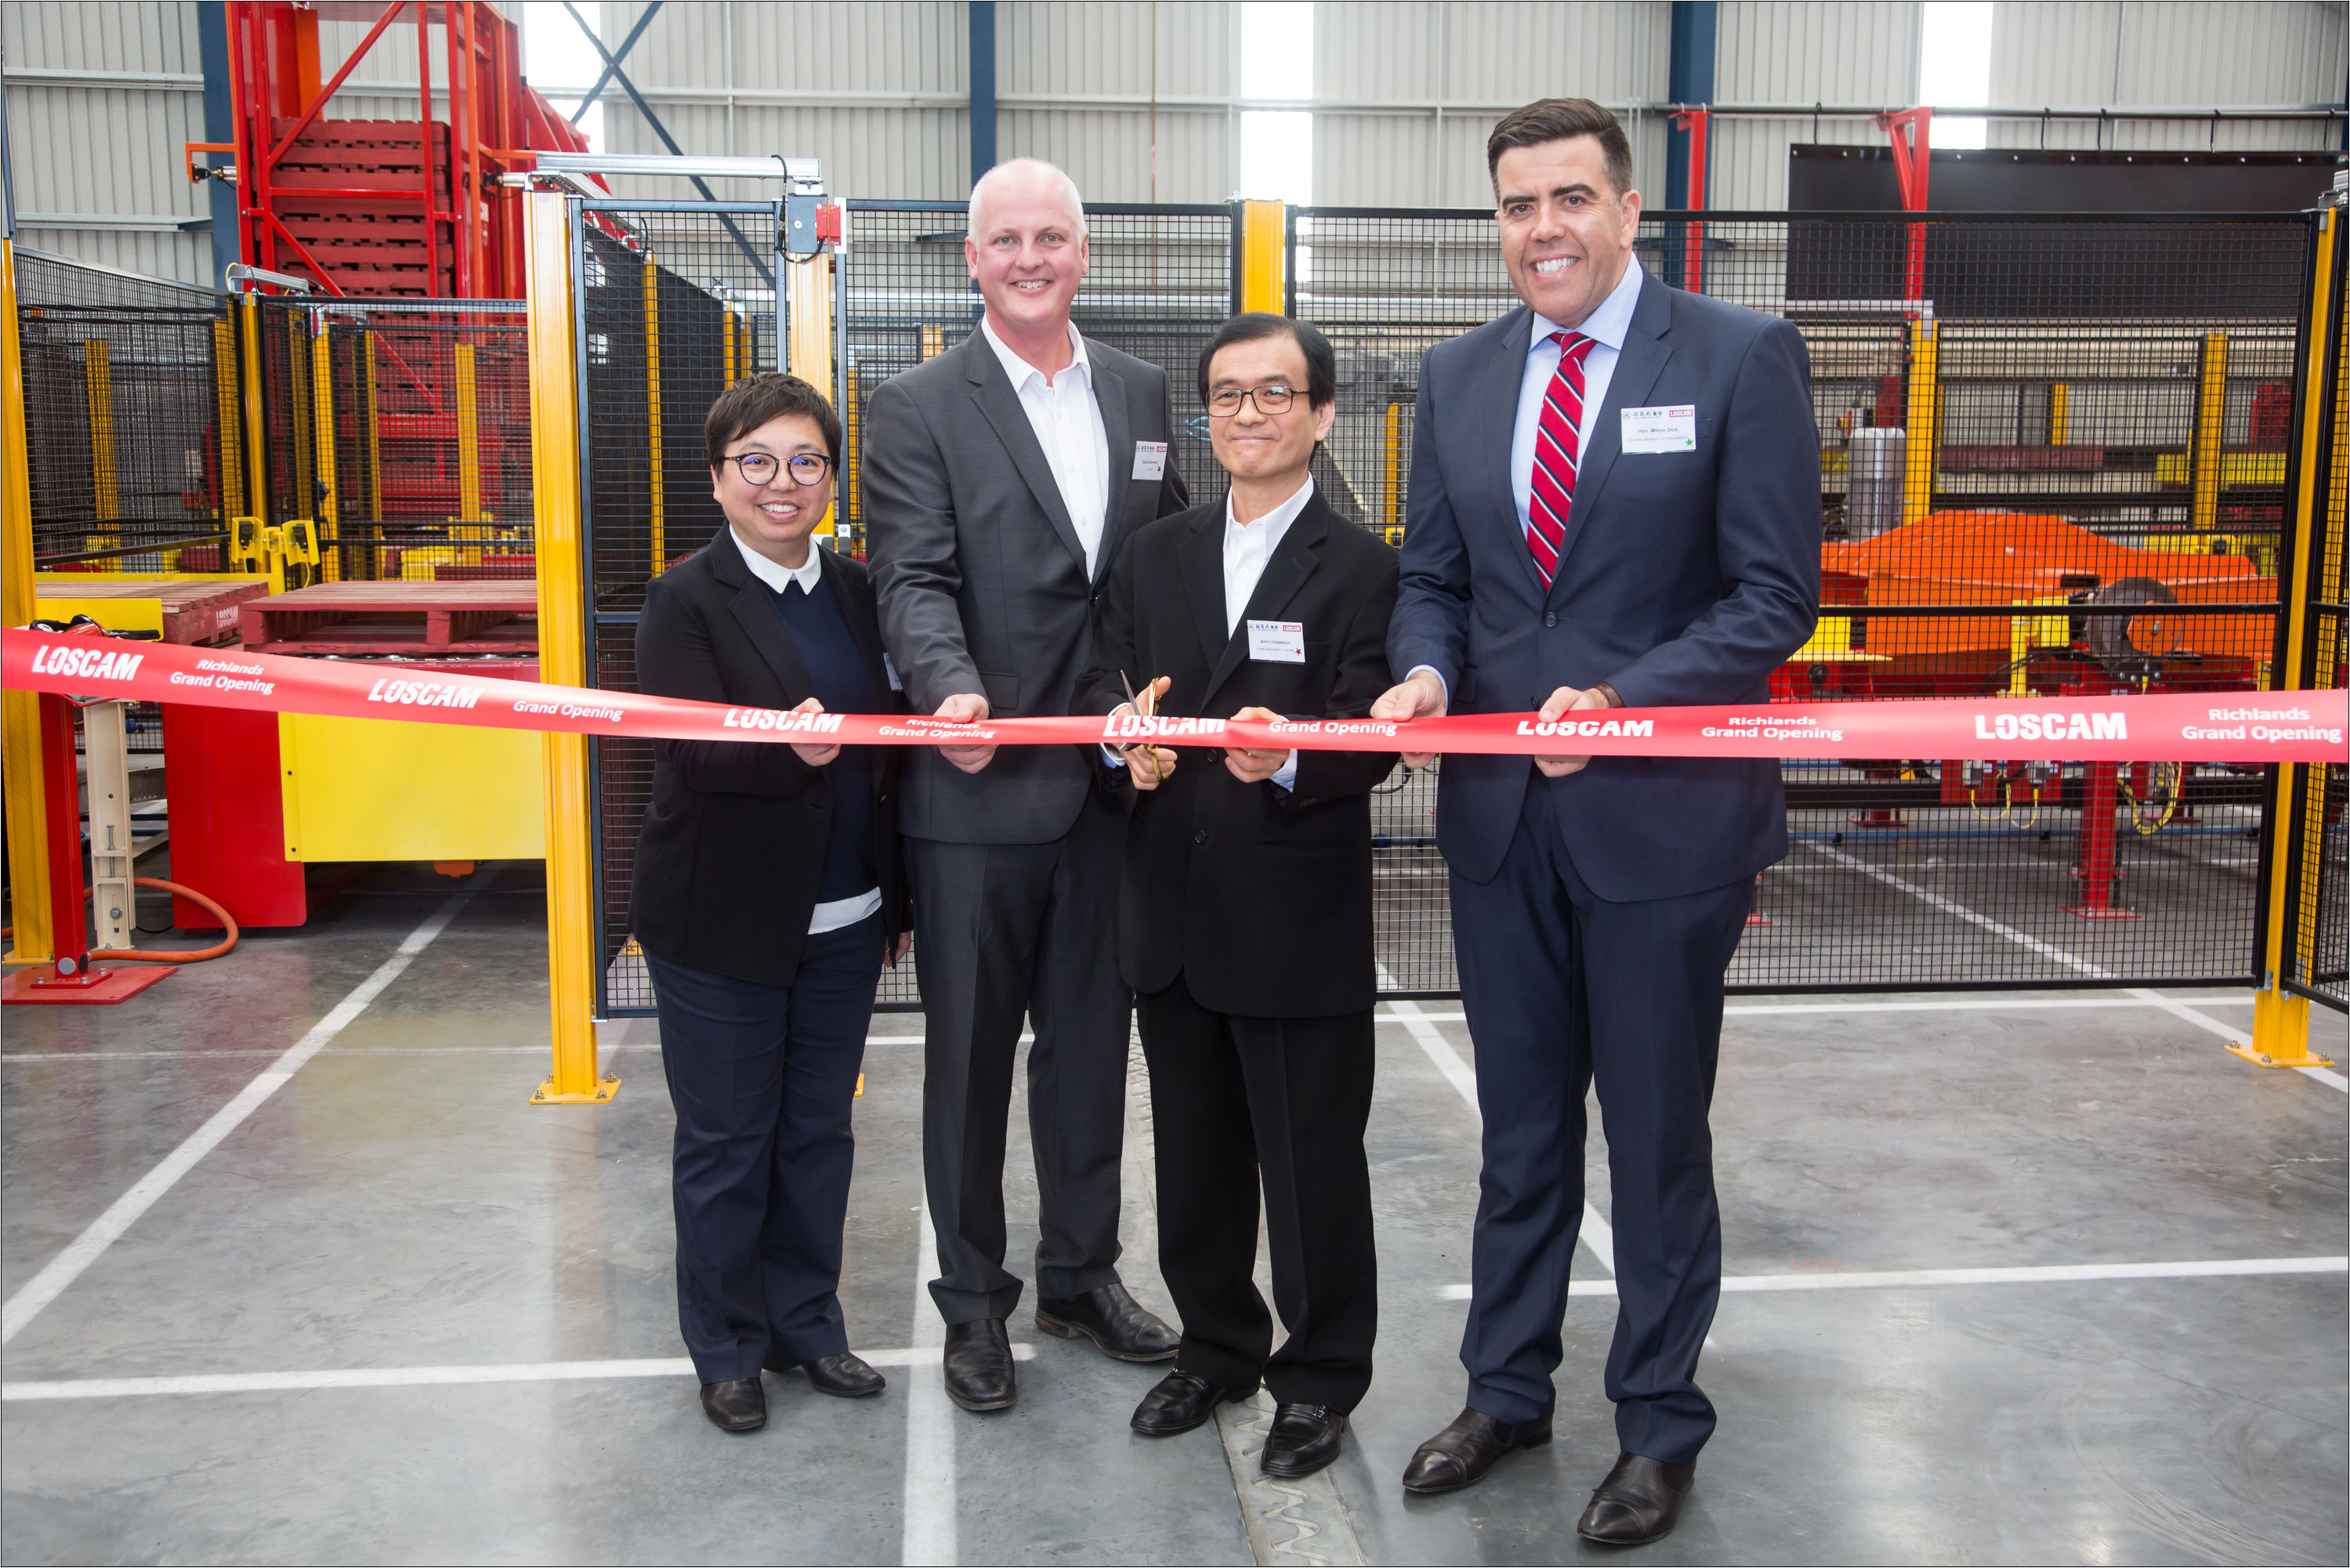 Ribbon-cutting by officiating guests: From right to left: Mr Milton Dick MP, Federal Member for Oxley; Sirin Limpaitoon, President of China Merchants Loscam; Daniel Bunnett, Executive Vice President of Australia and New Zealand and Linda Tsui, Executive Vice President of Finance of China Merchants Loscam